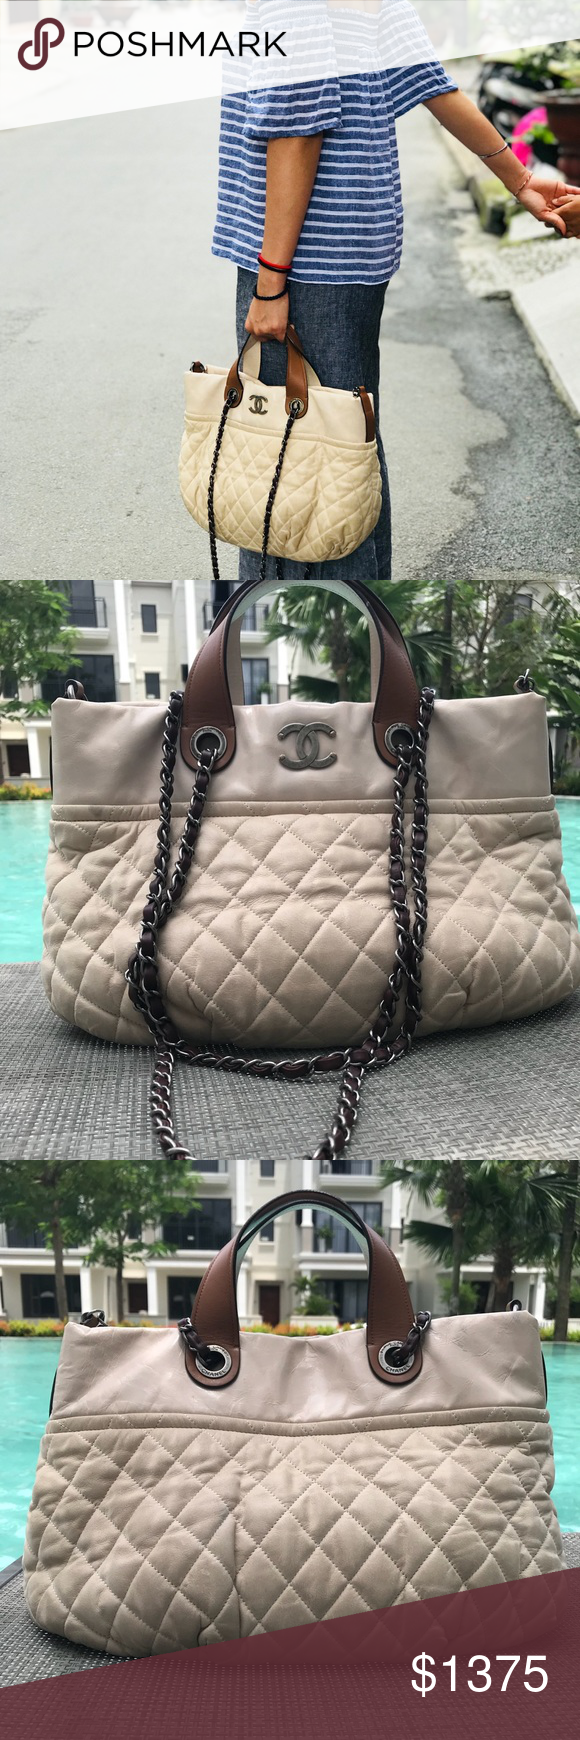 819f32d1c4fc Authentic Chanel In The Mix Tote Beige 💯 authentic Chanel In the Mix Tote.  Measurements: 15